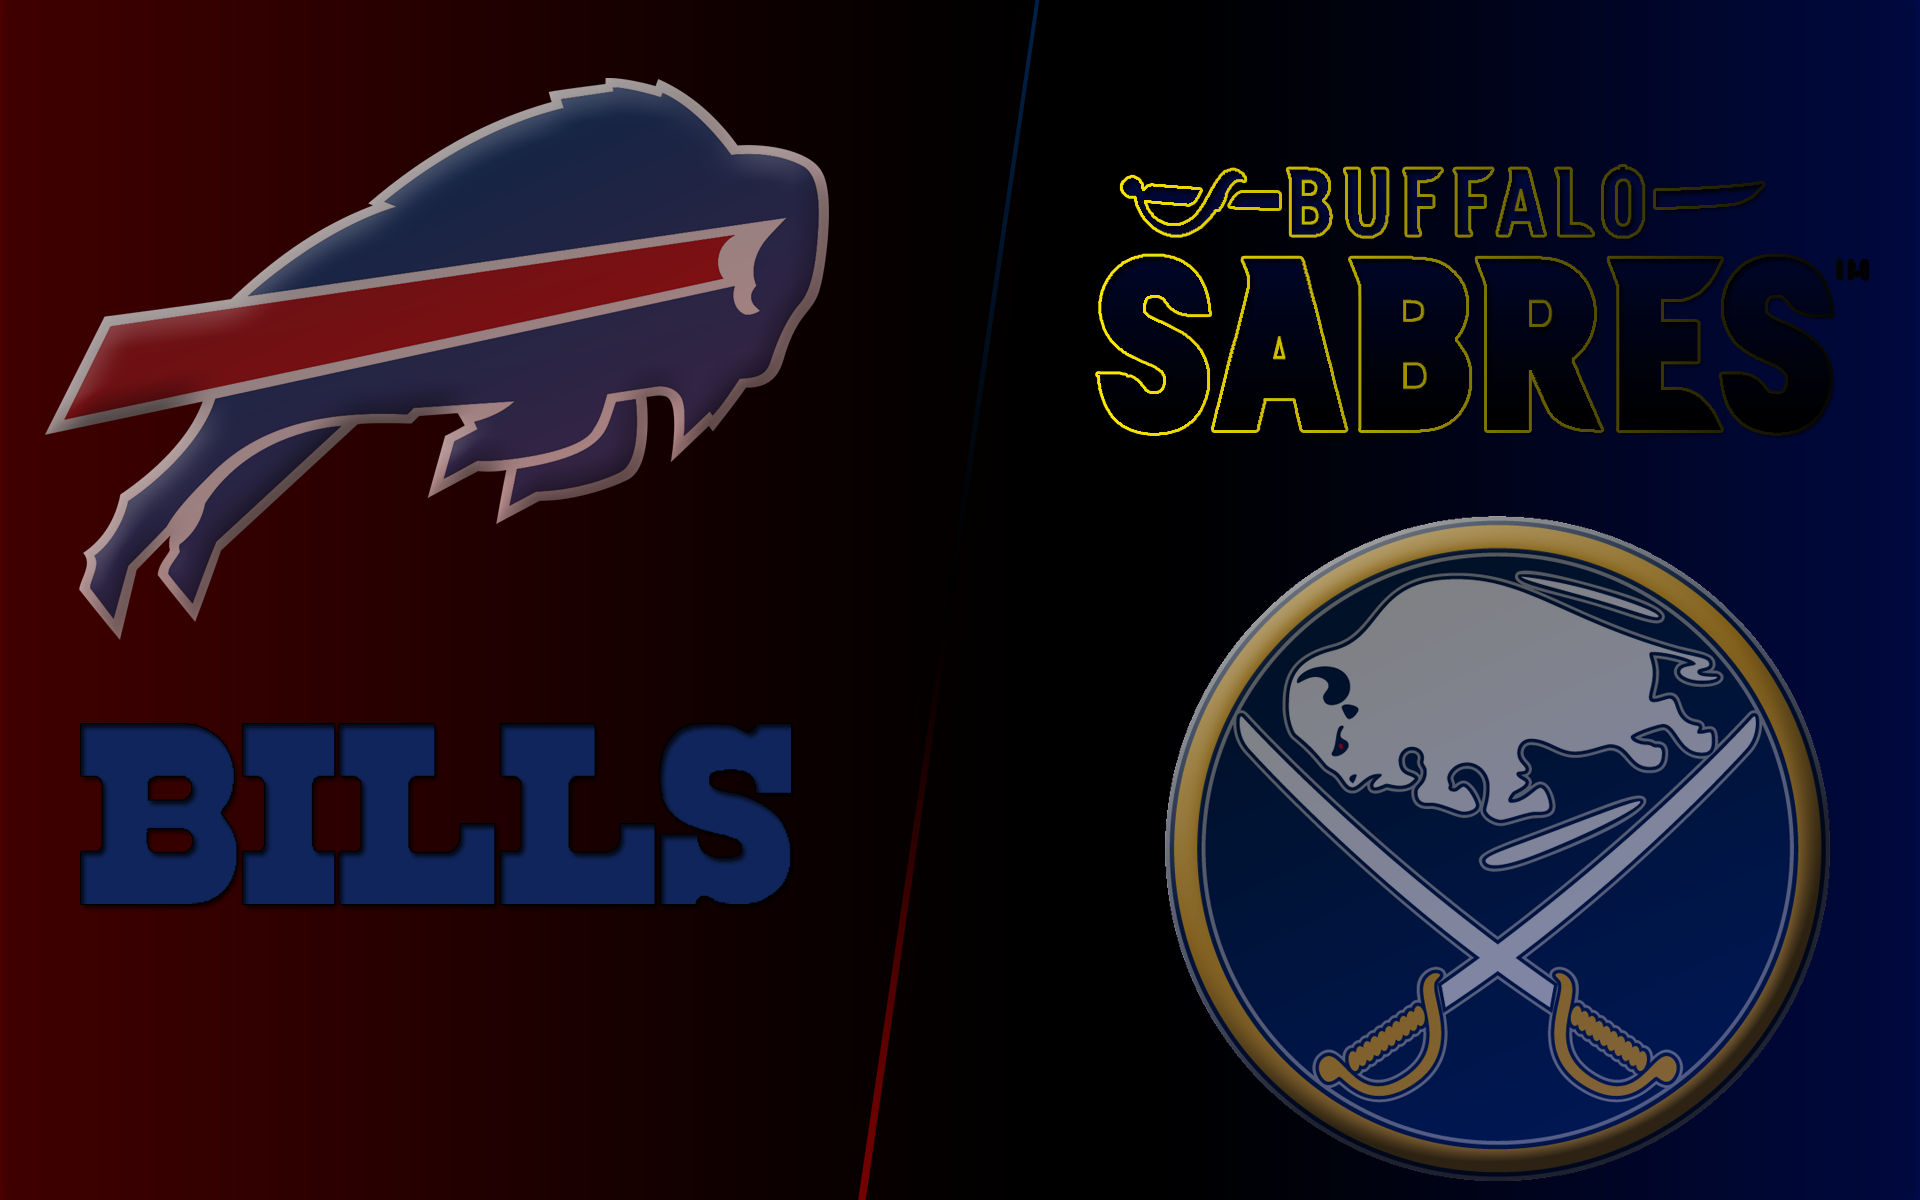 Buffalo BillsBuffalo Sabres Wallpaper by SirMudbone 1920x1200